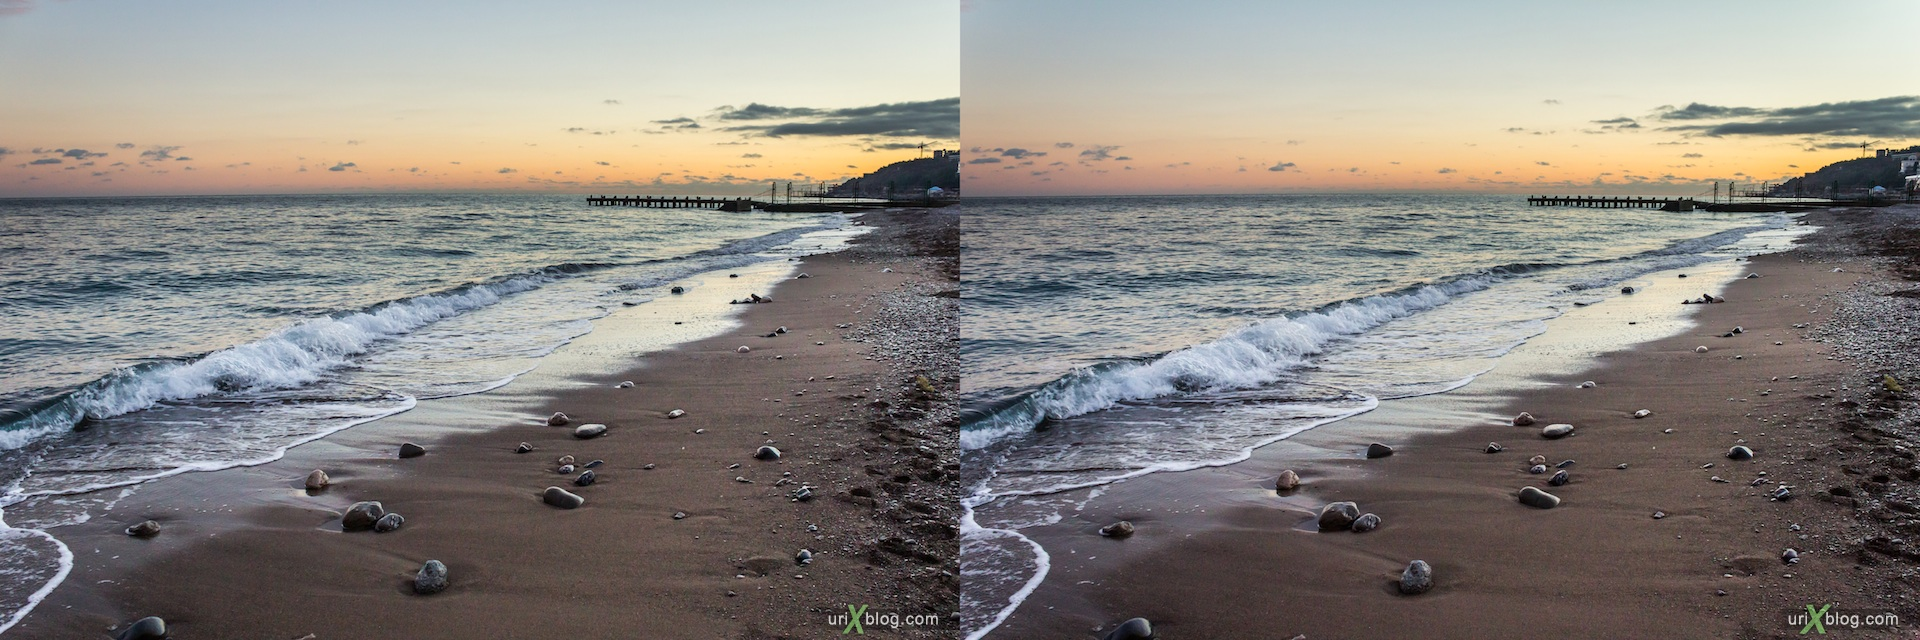 2012, sunset, beach, Black sea, Imeni Lenina embankment, Yalta, evening, coast city, Crimea, Ukraine, 3D, stereo pair, cross-eyed, crossview, cross view stereo pair, stereoscopic